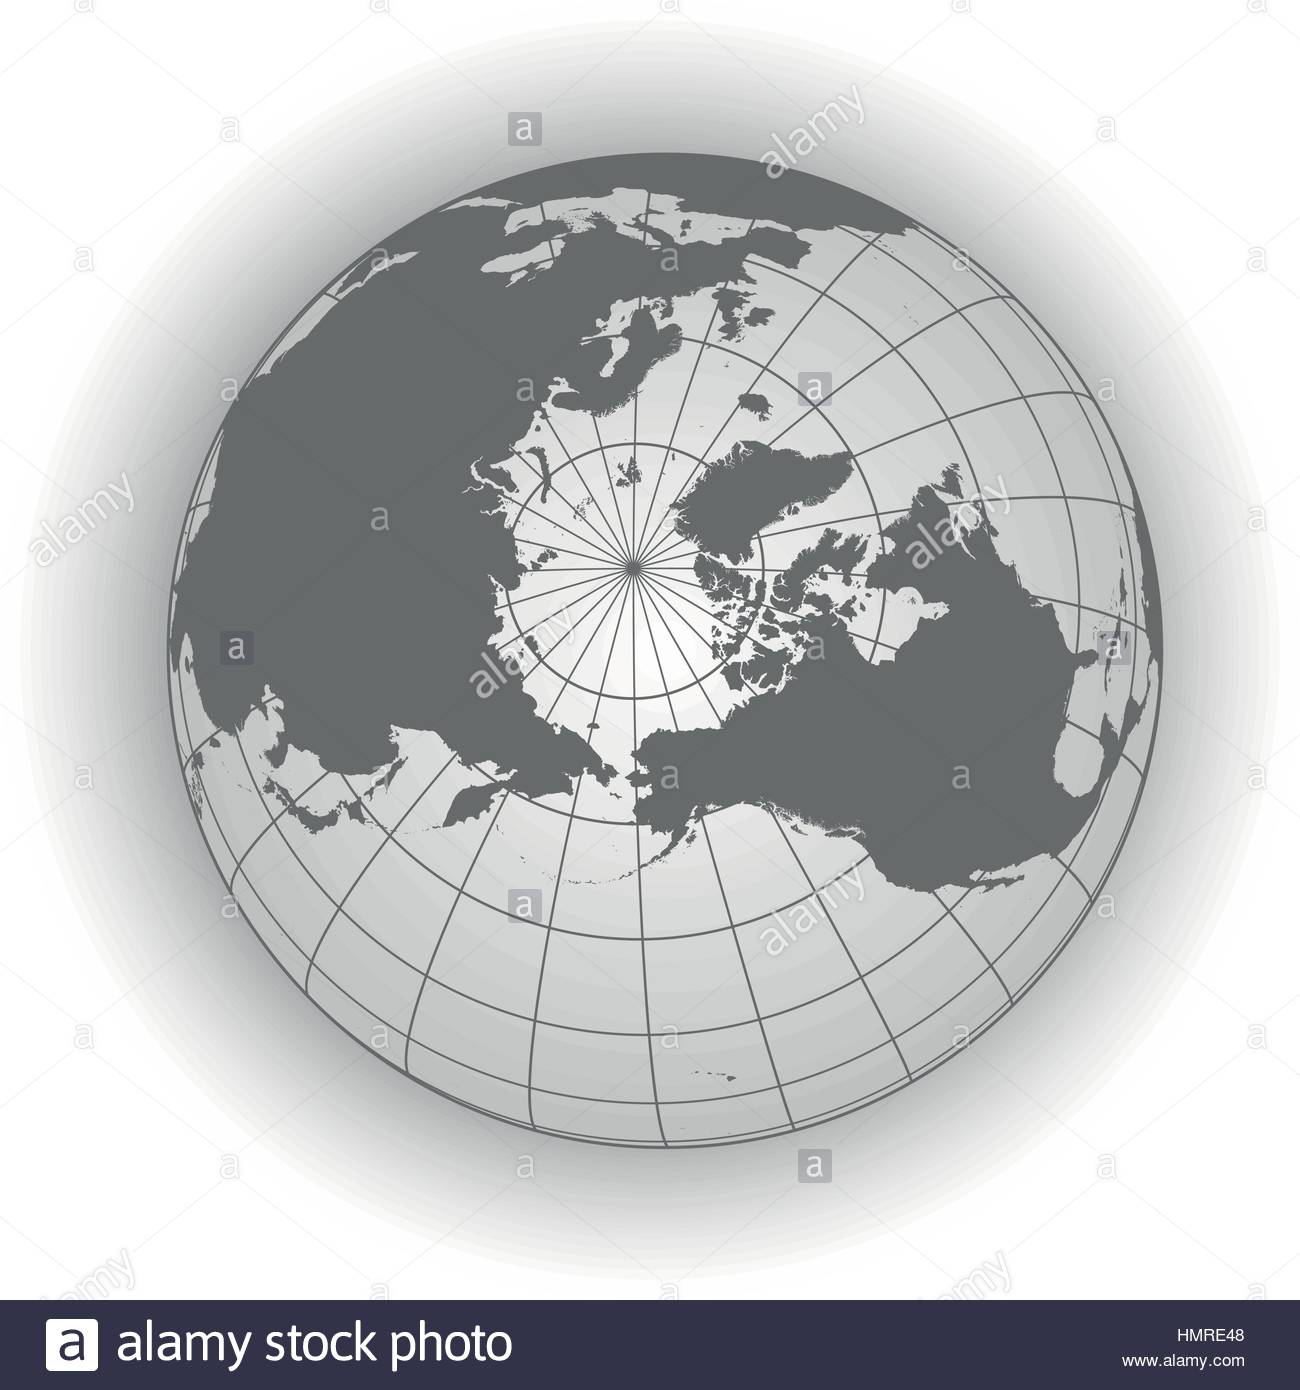 north pole map europe greenland asia america russia earth globe worldmap elements of this image furnished by nasa